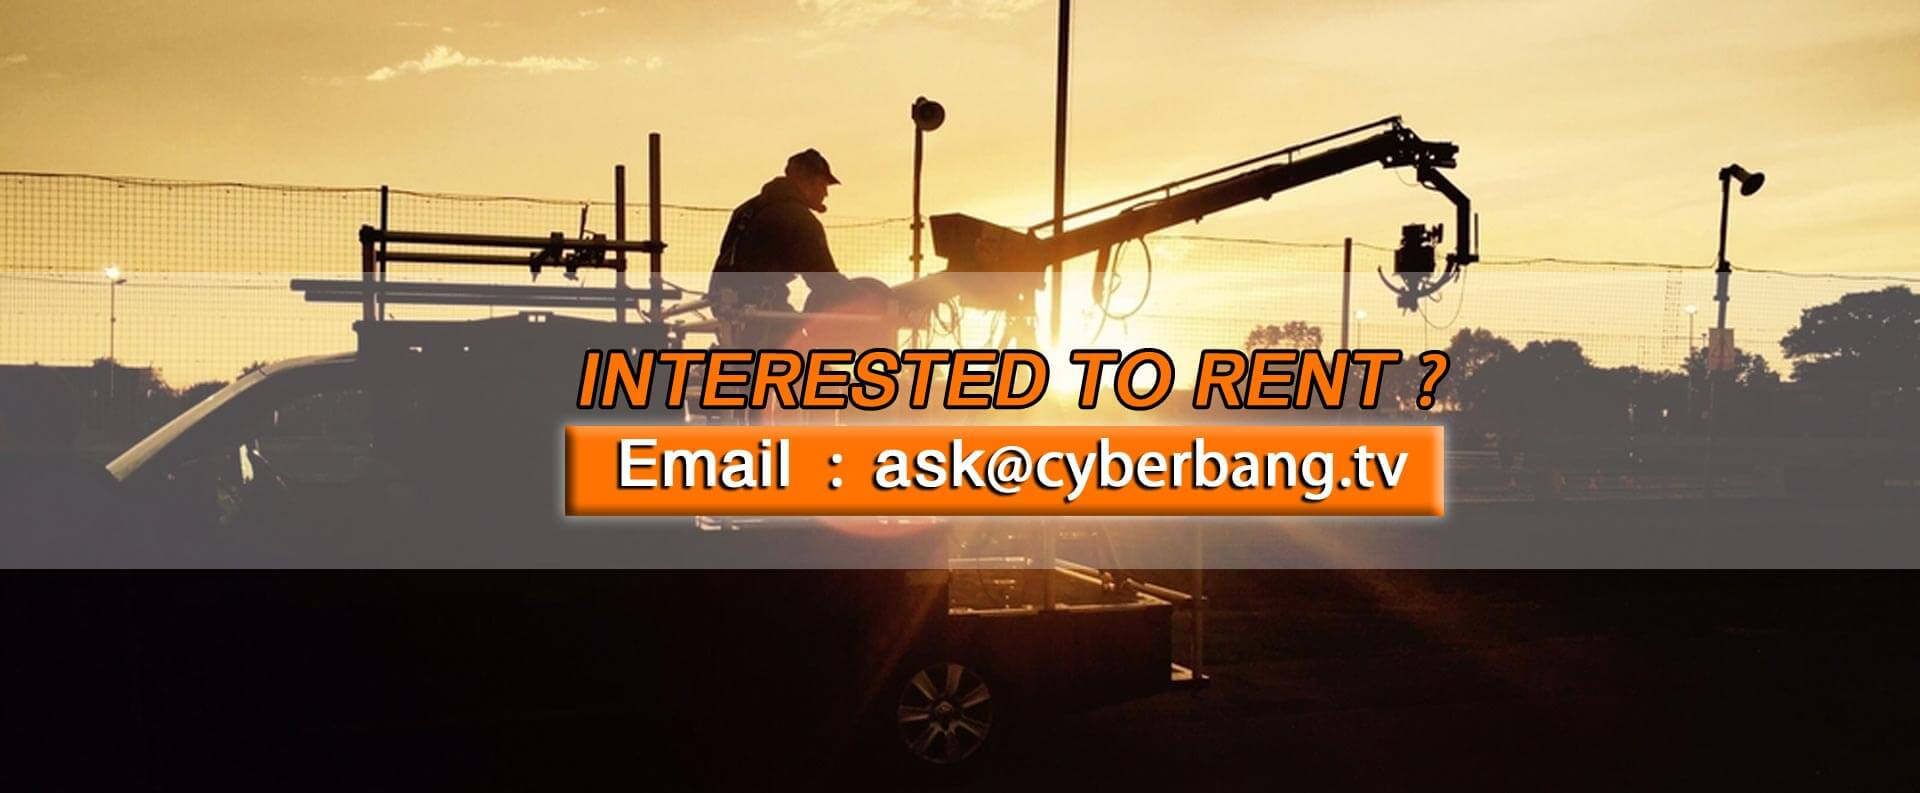 ask-for-quotation-jimmy-jib